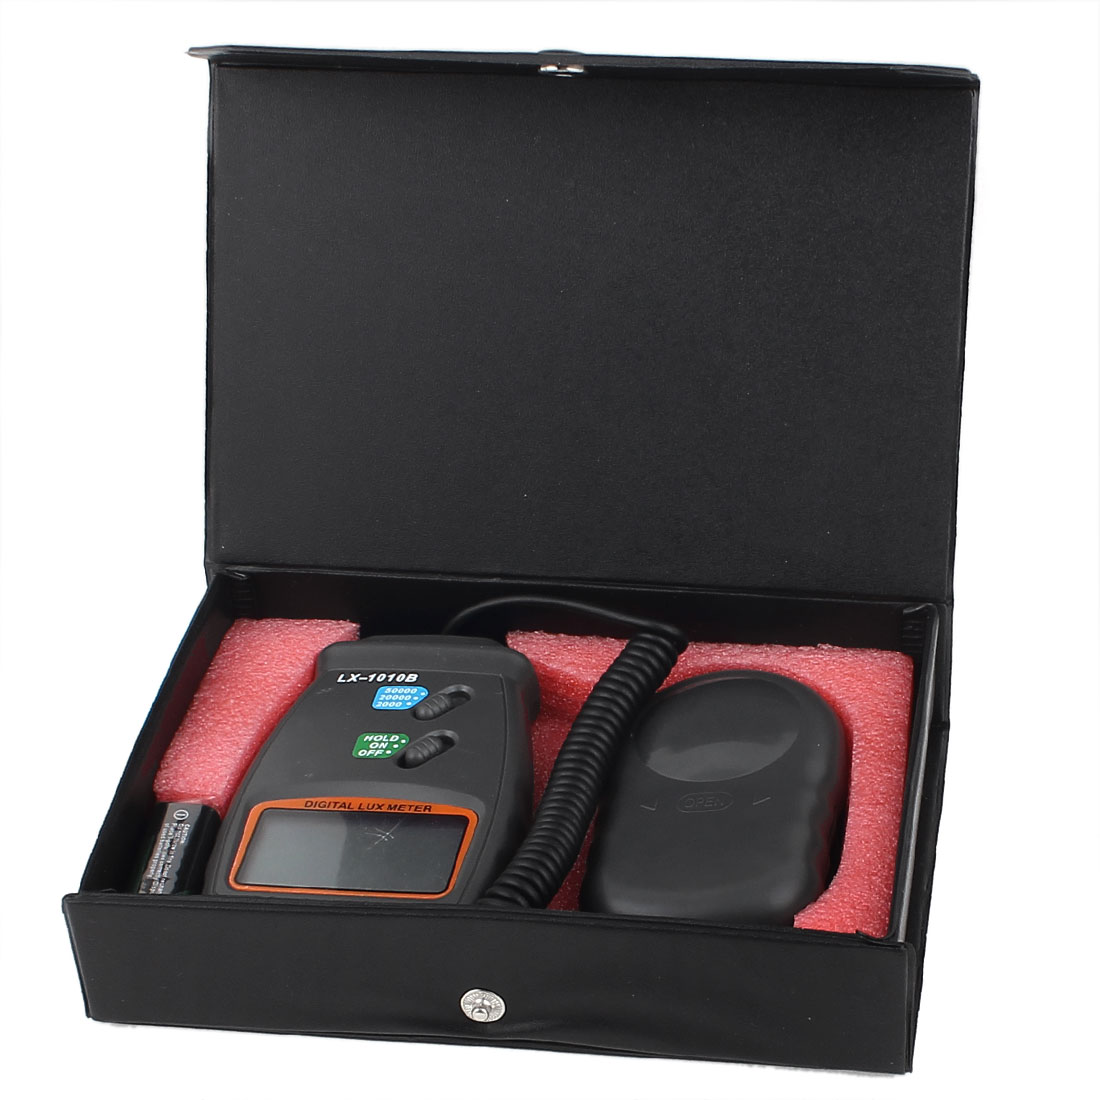 50,000 Lux Digital Light Meter Luxmeter Luminometer Photometer High Accuracy LCD Display